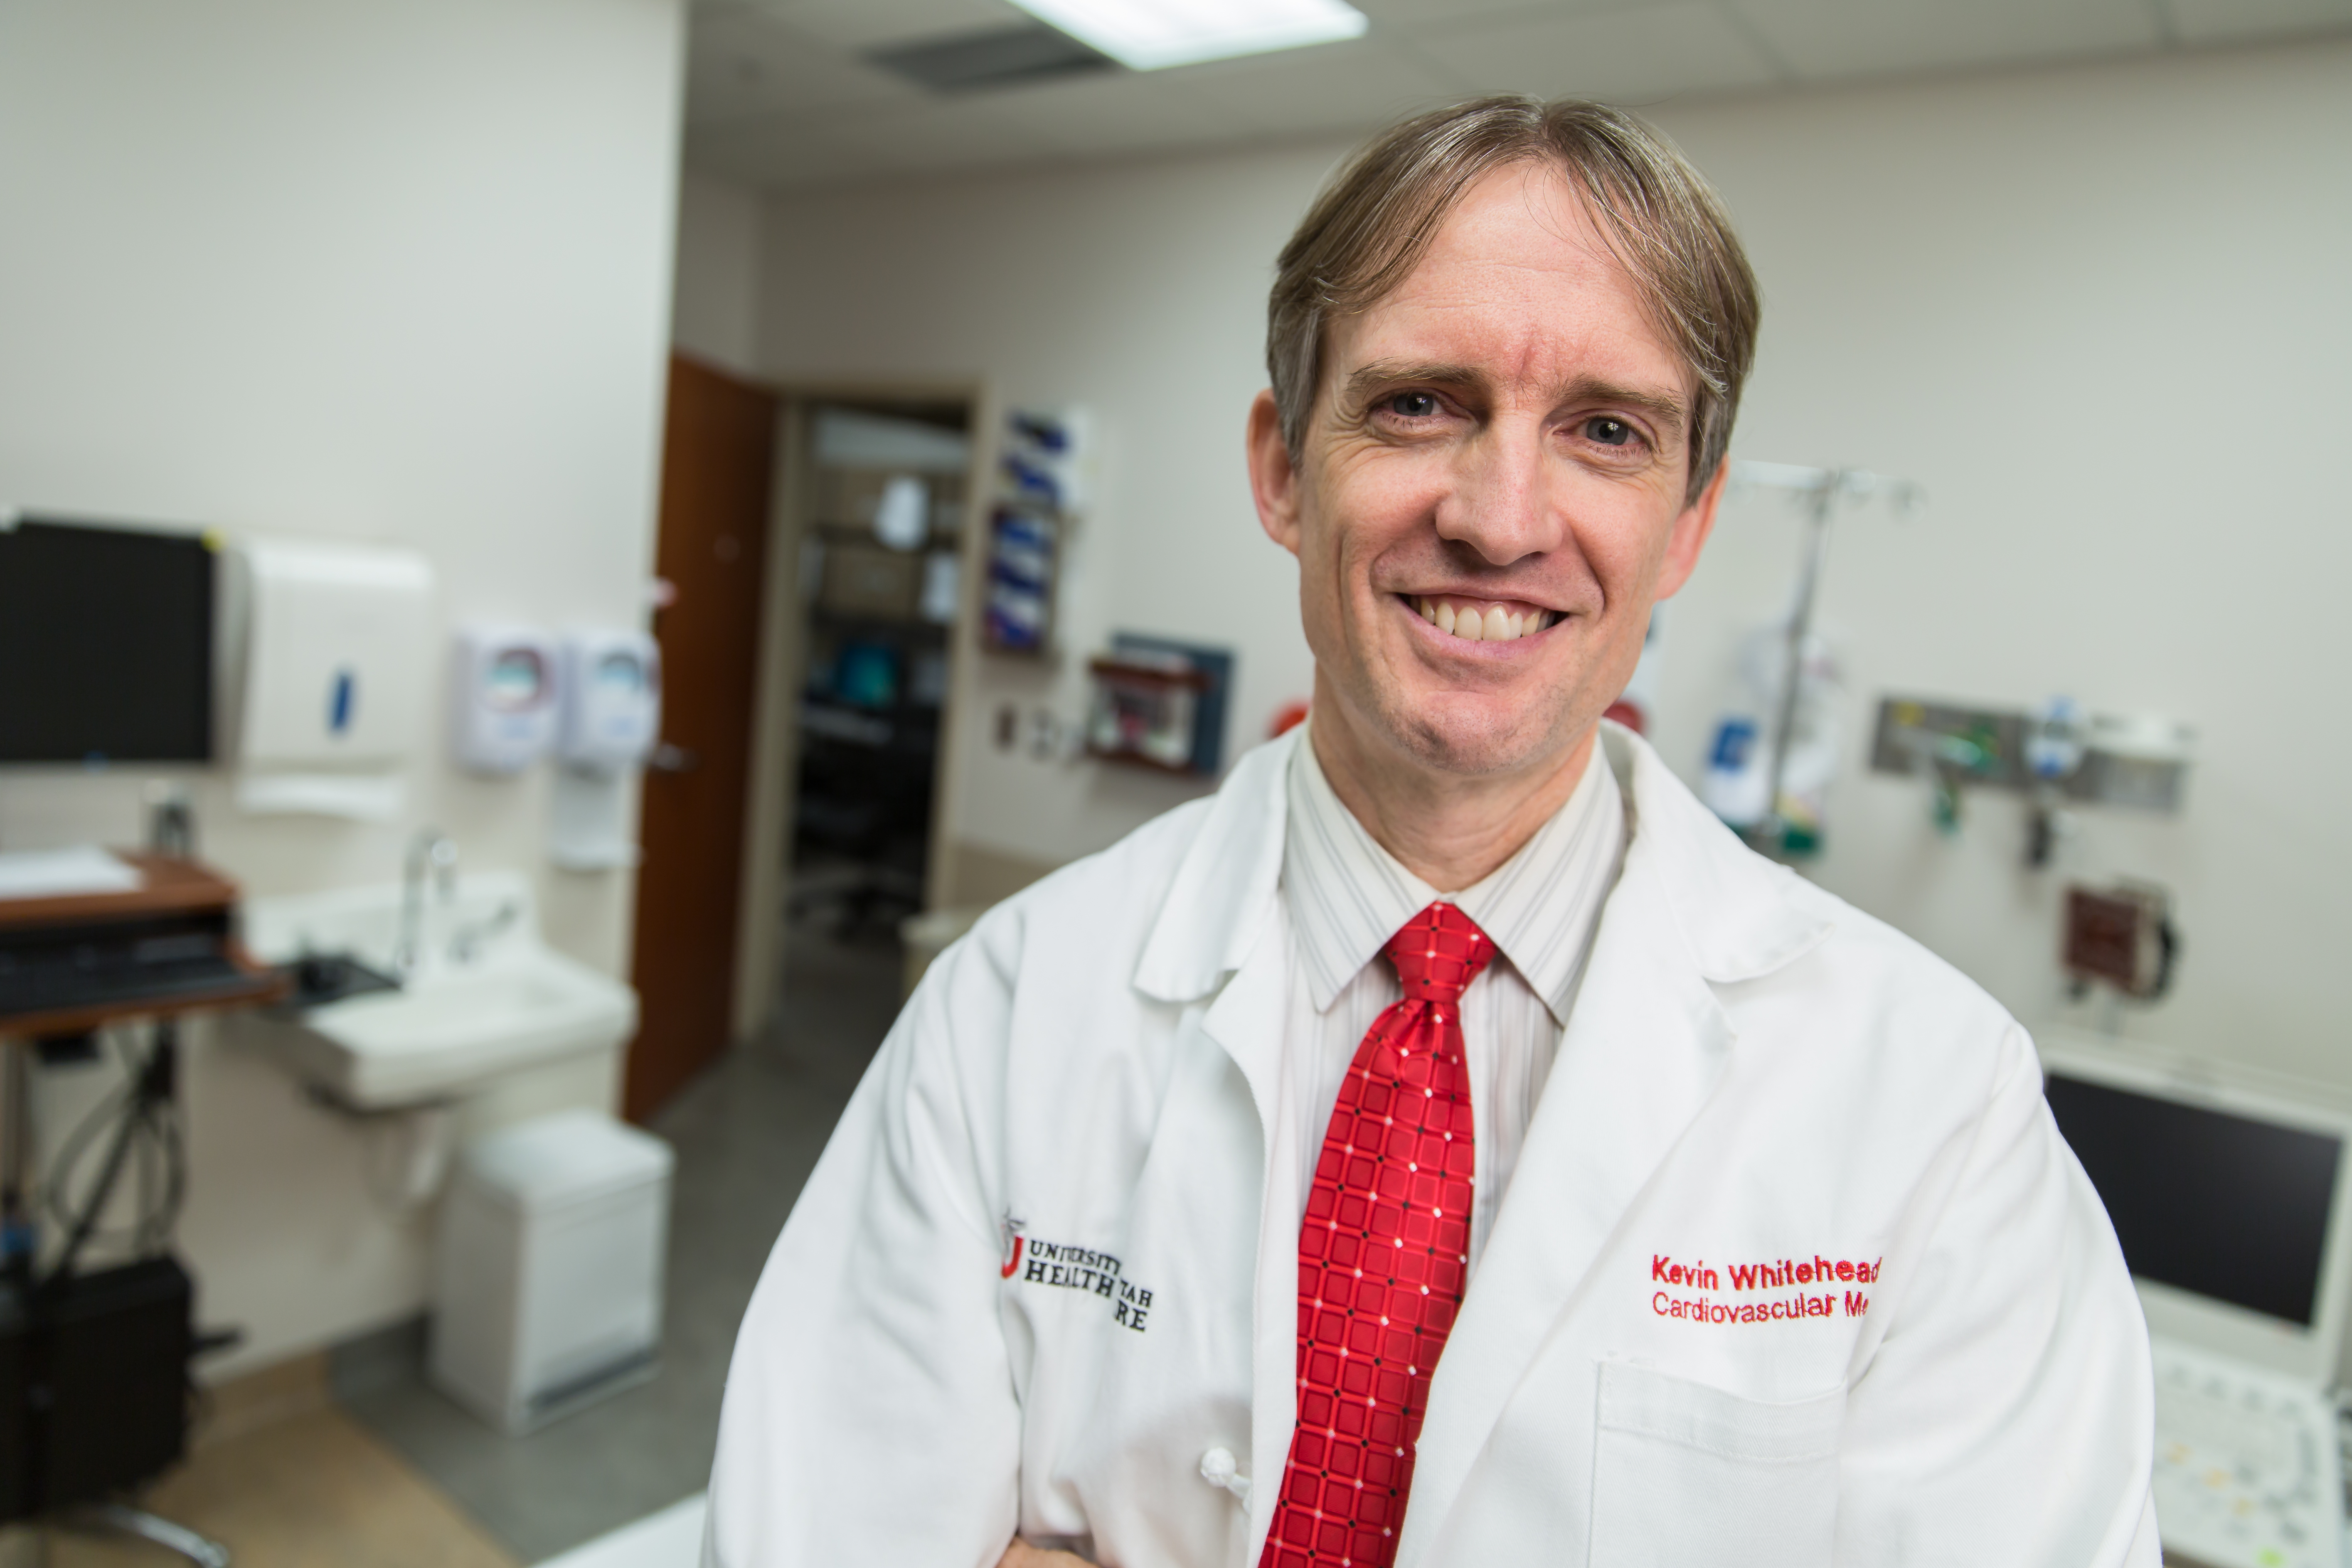 Kevin Whitehead, M.D., F.A.H.A., associate professor of internal medicine at the University of Utah School of Medicine and director of the Utah HHT Clinical Center